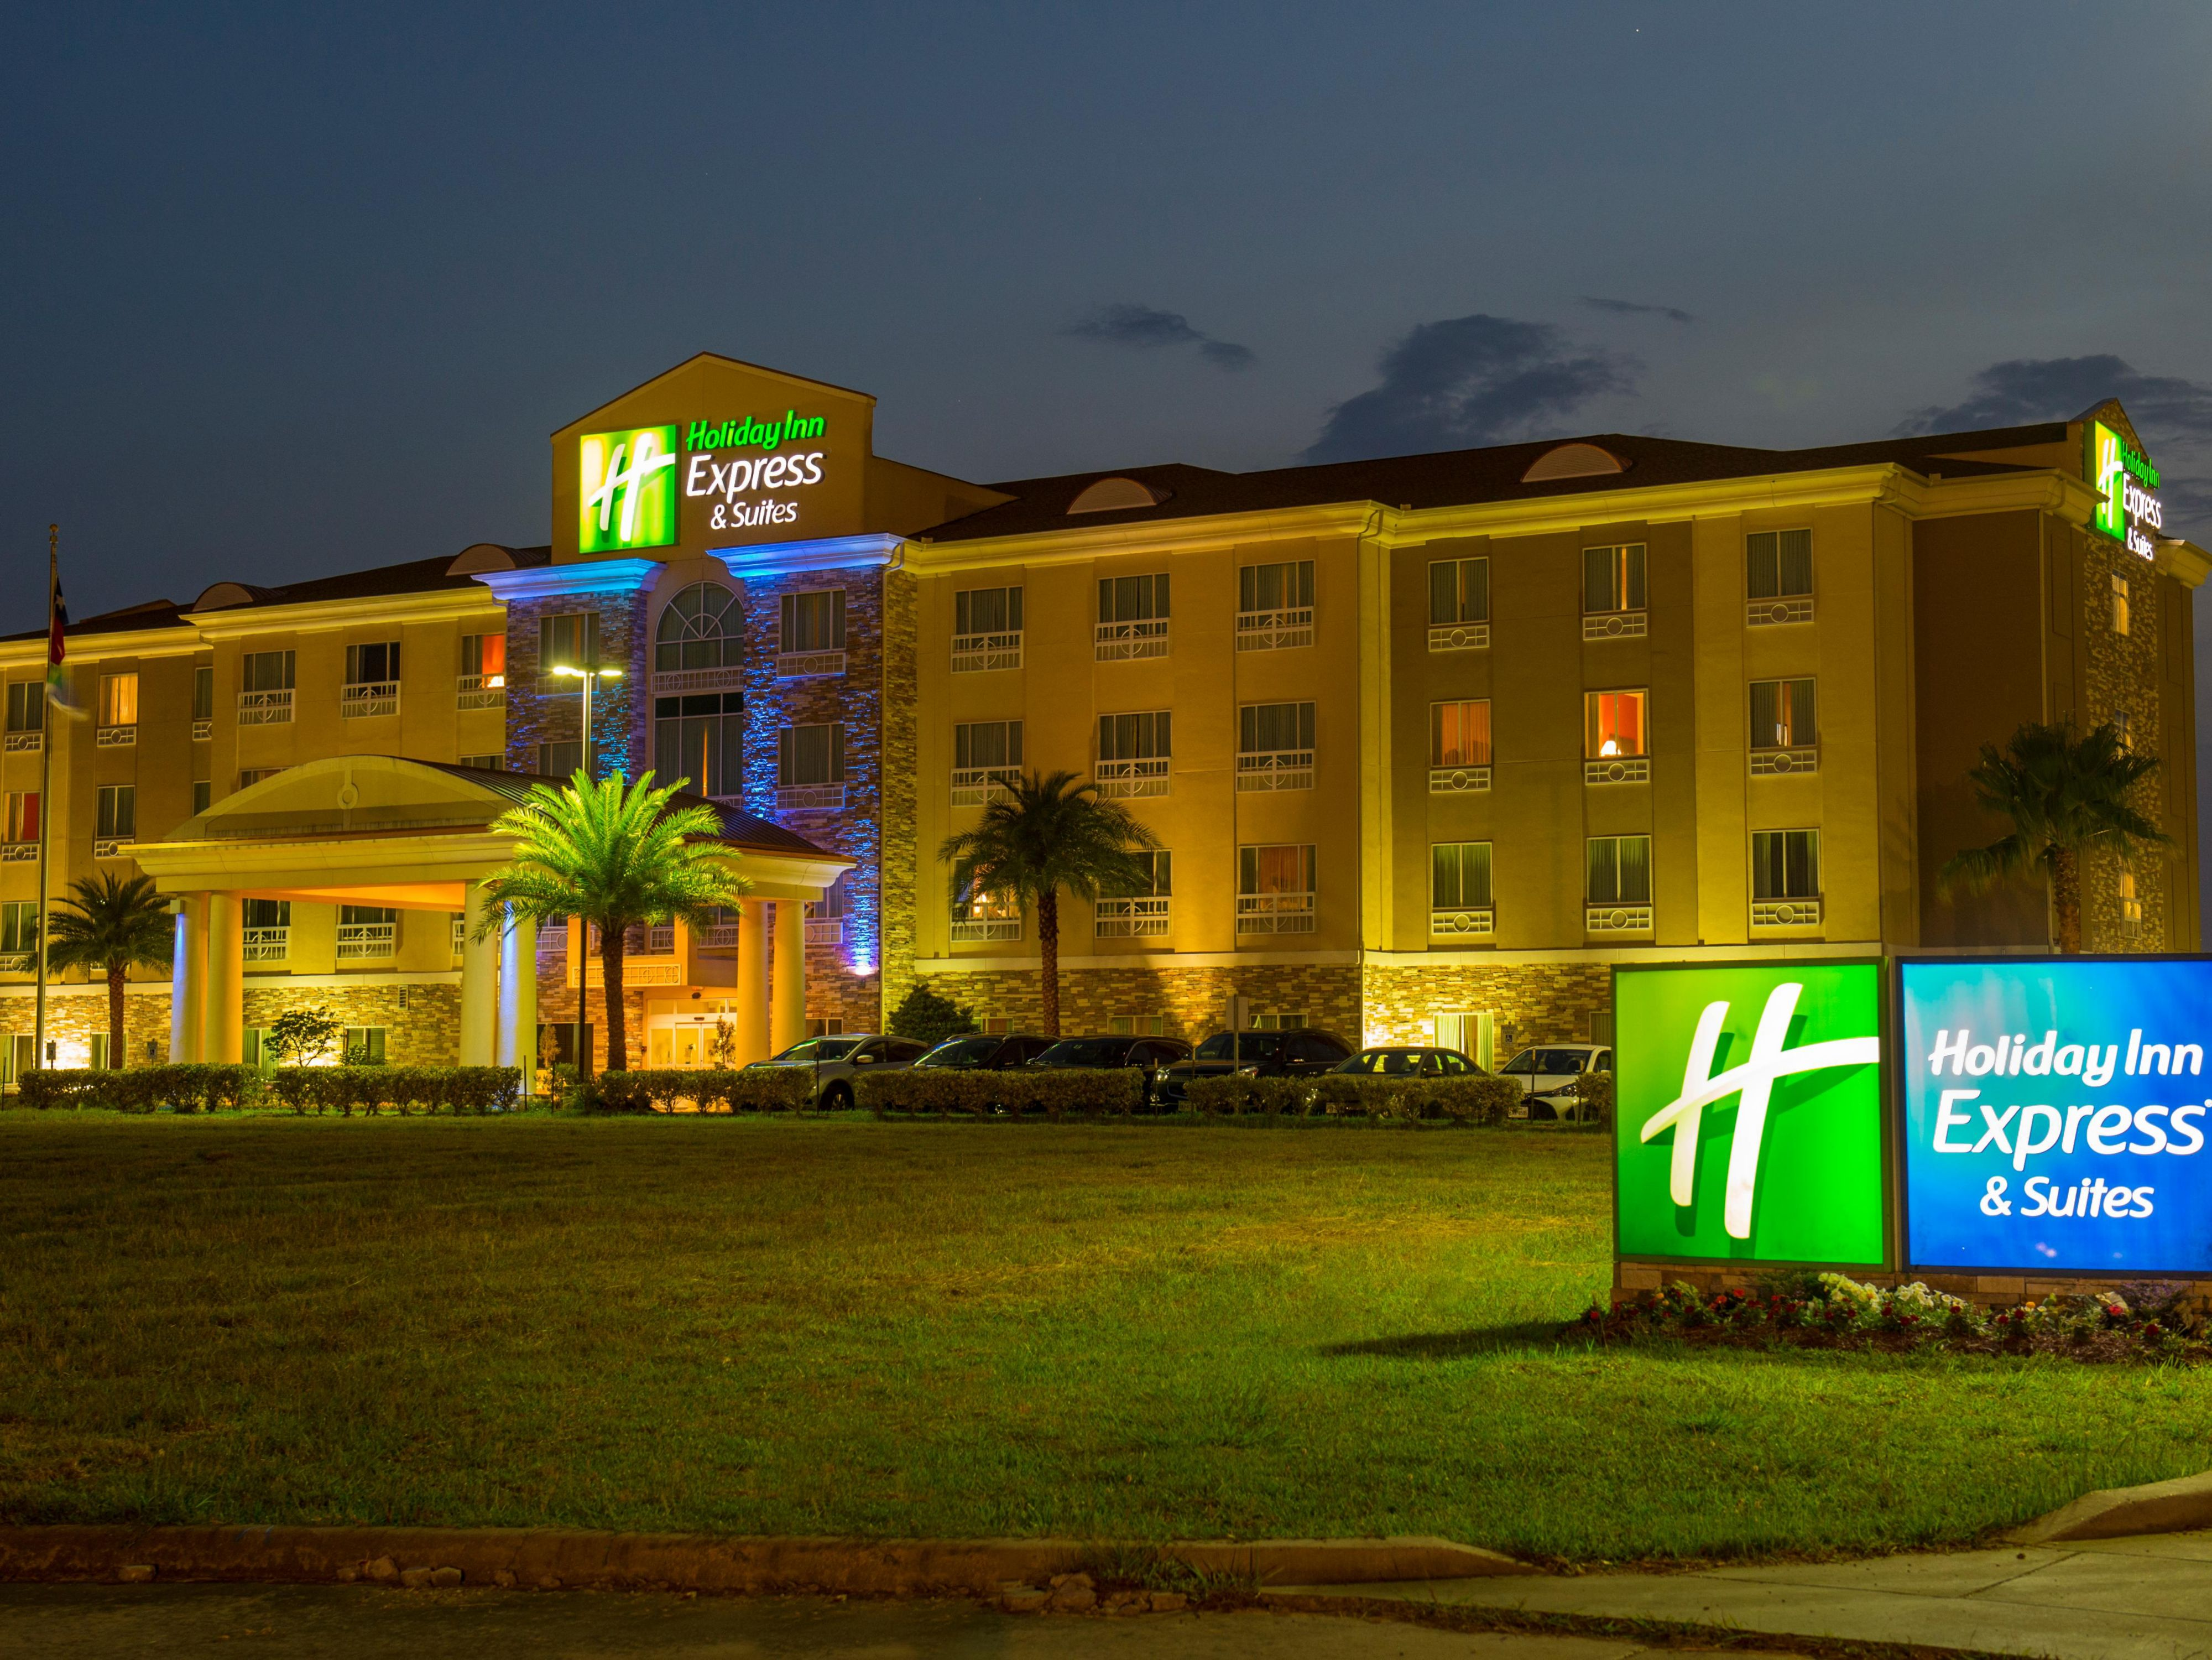 Holiday Inn Express hotel near Nasa